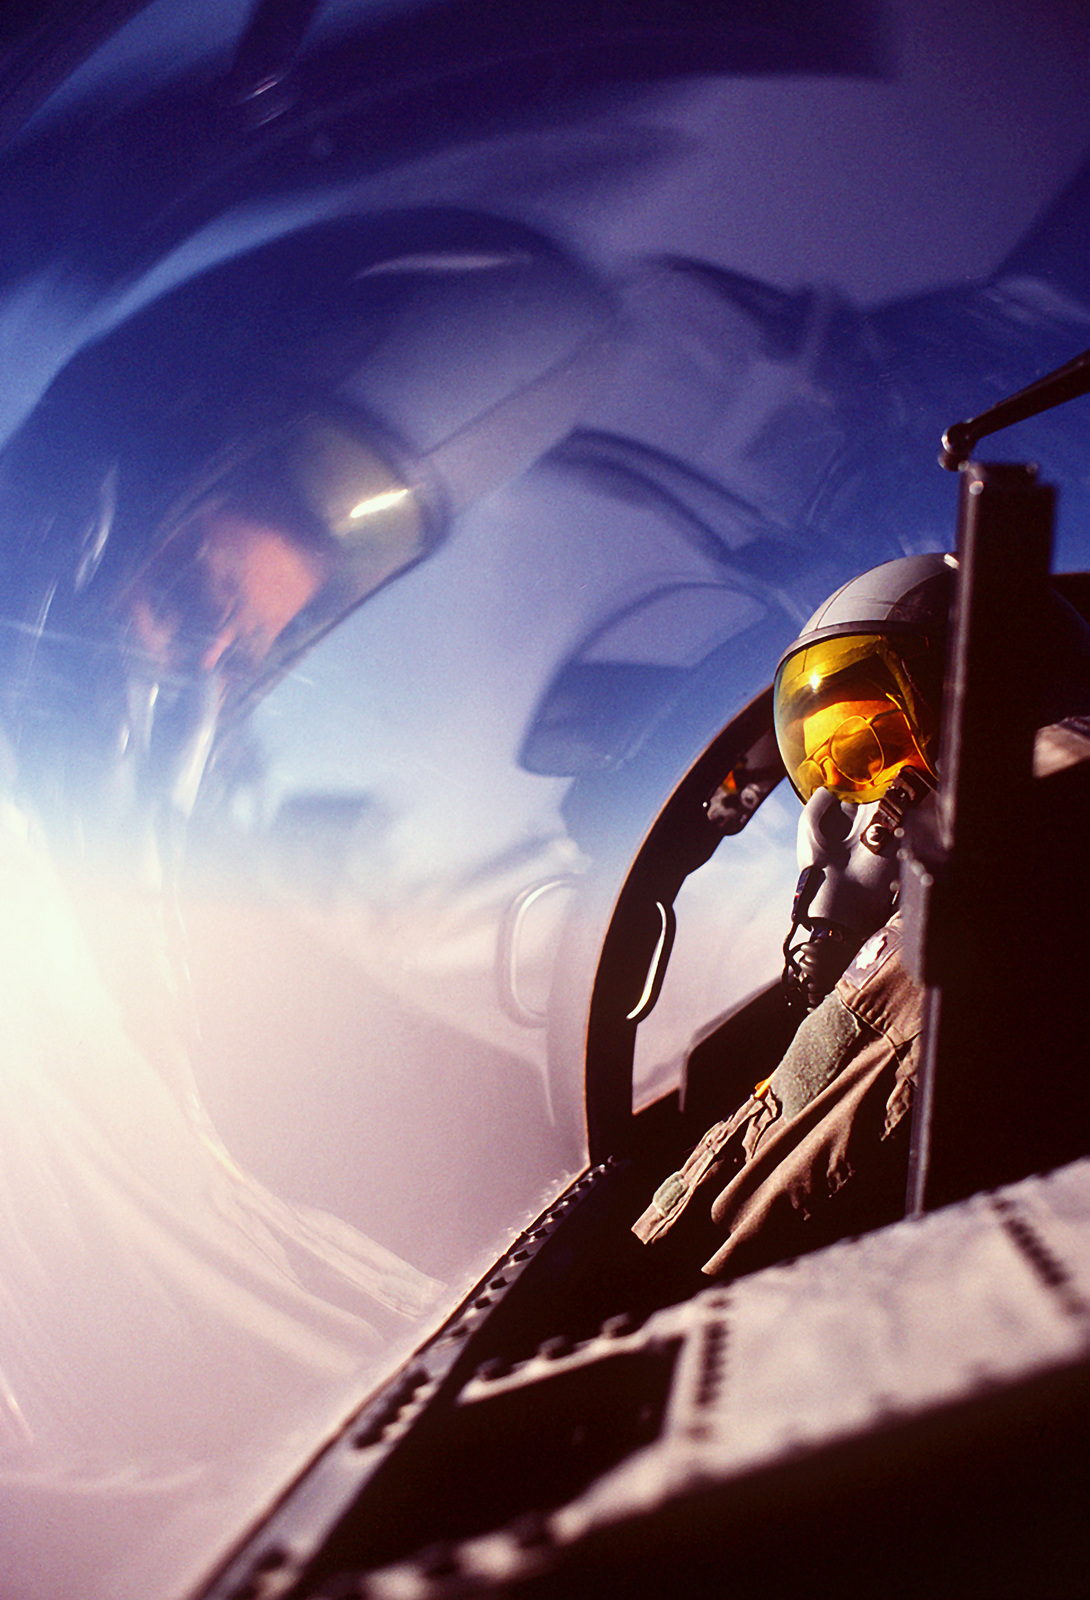 LT. COL. George Wagasky of the 1ST Tactical Fighter Wing scans the horizon from the cockpit of his F-15D Eagle aircraft while on a combat patrol near the Iraqi border during Operation Desert Shield